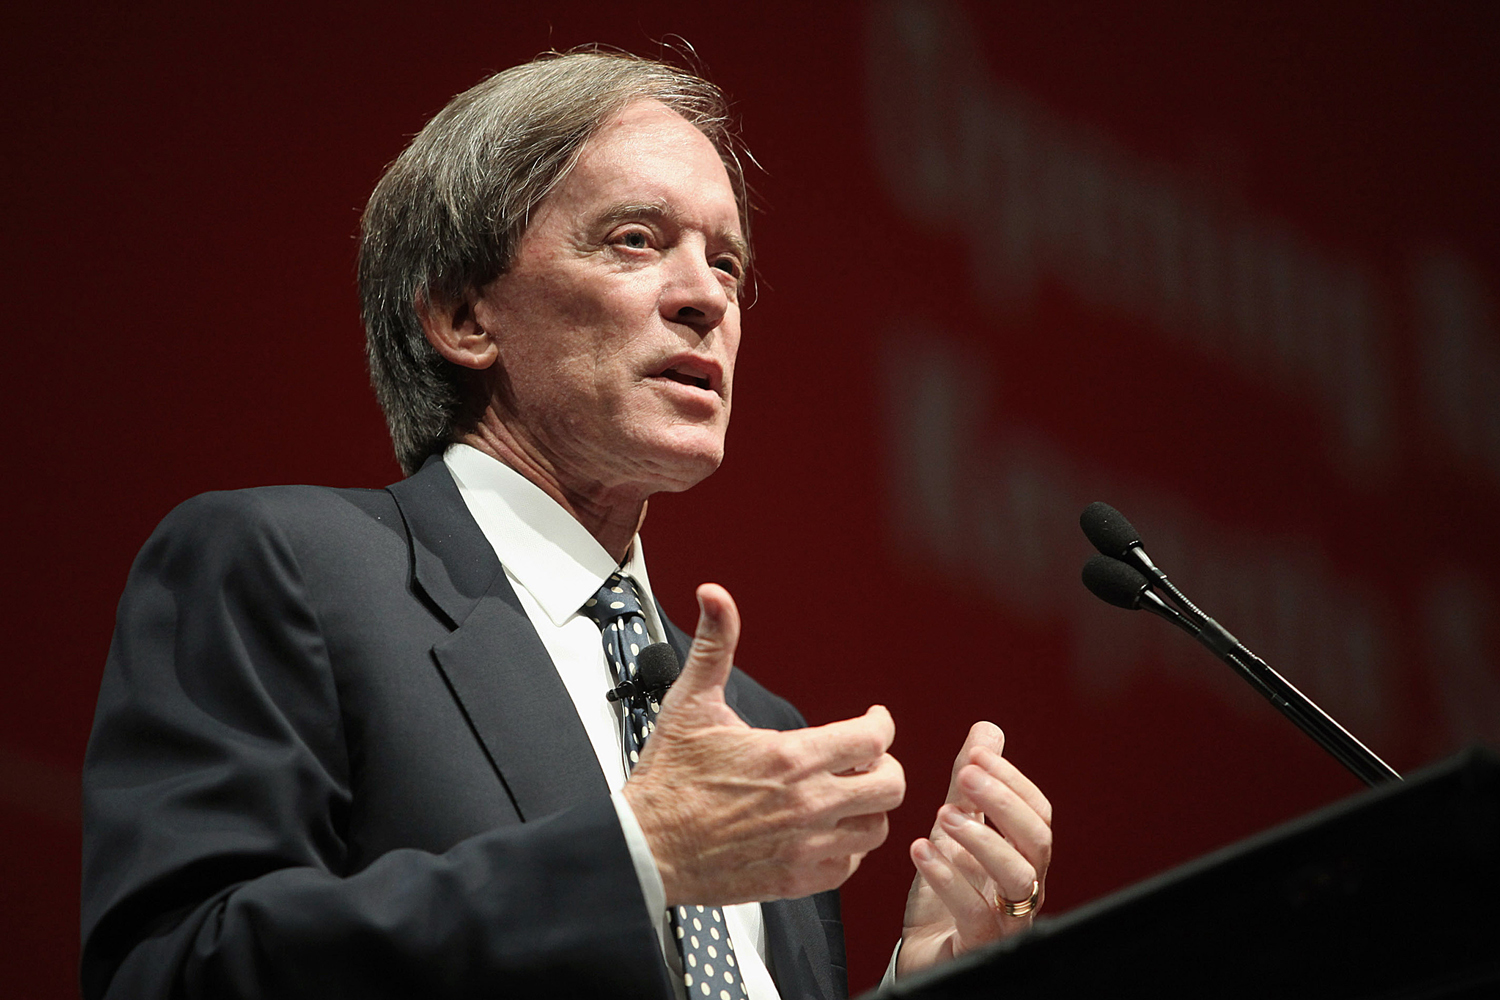 Bill Gross, co-chief investment officer of Pacific Investment Management Co., speaks at the Morningstar Investment Conference in Chicago, Illinois, U.S., on Wednesday, June 8, 2011.